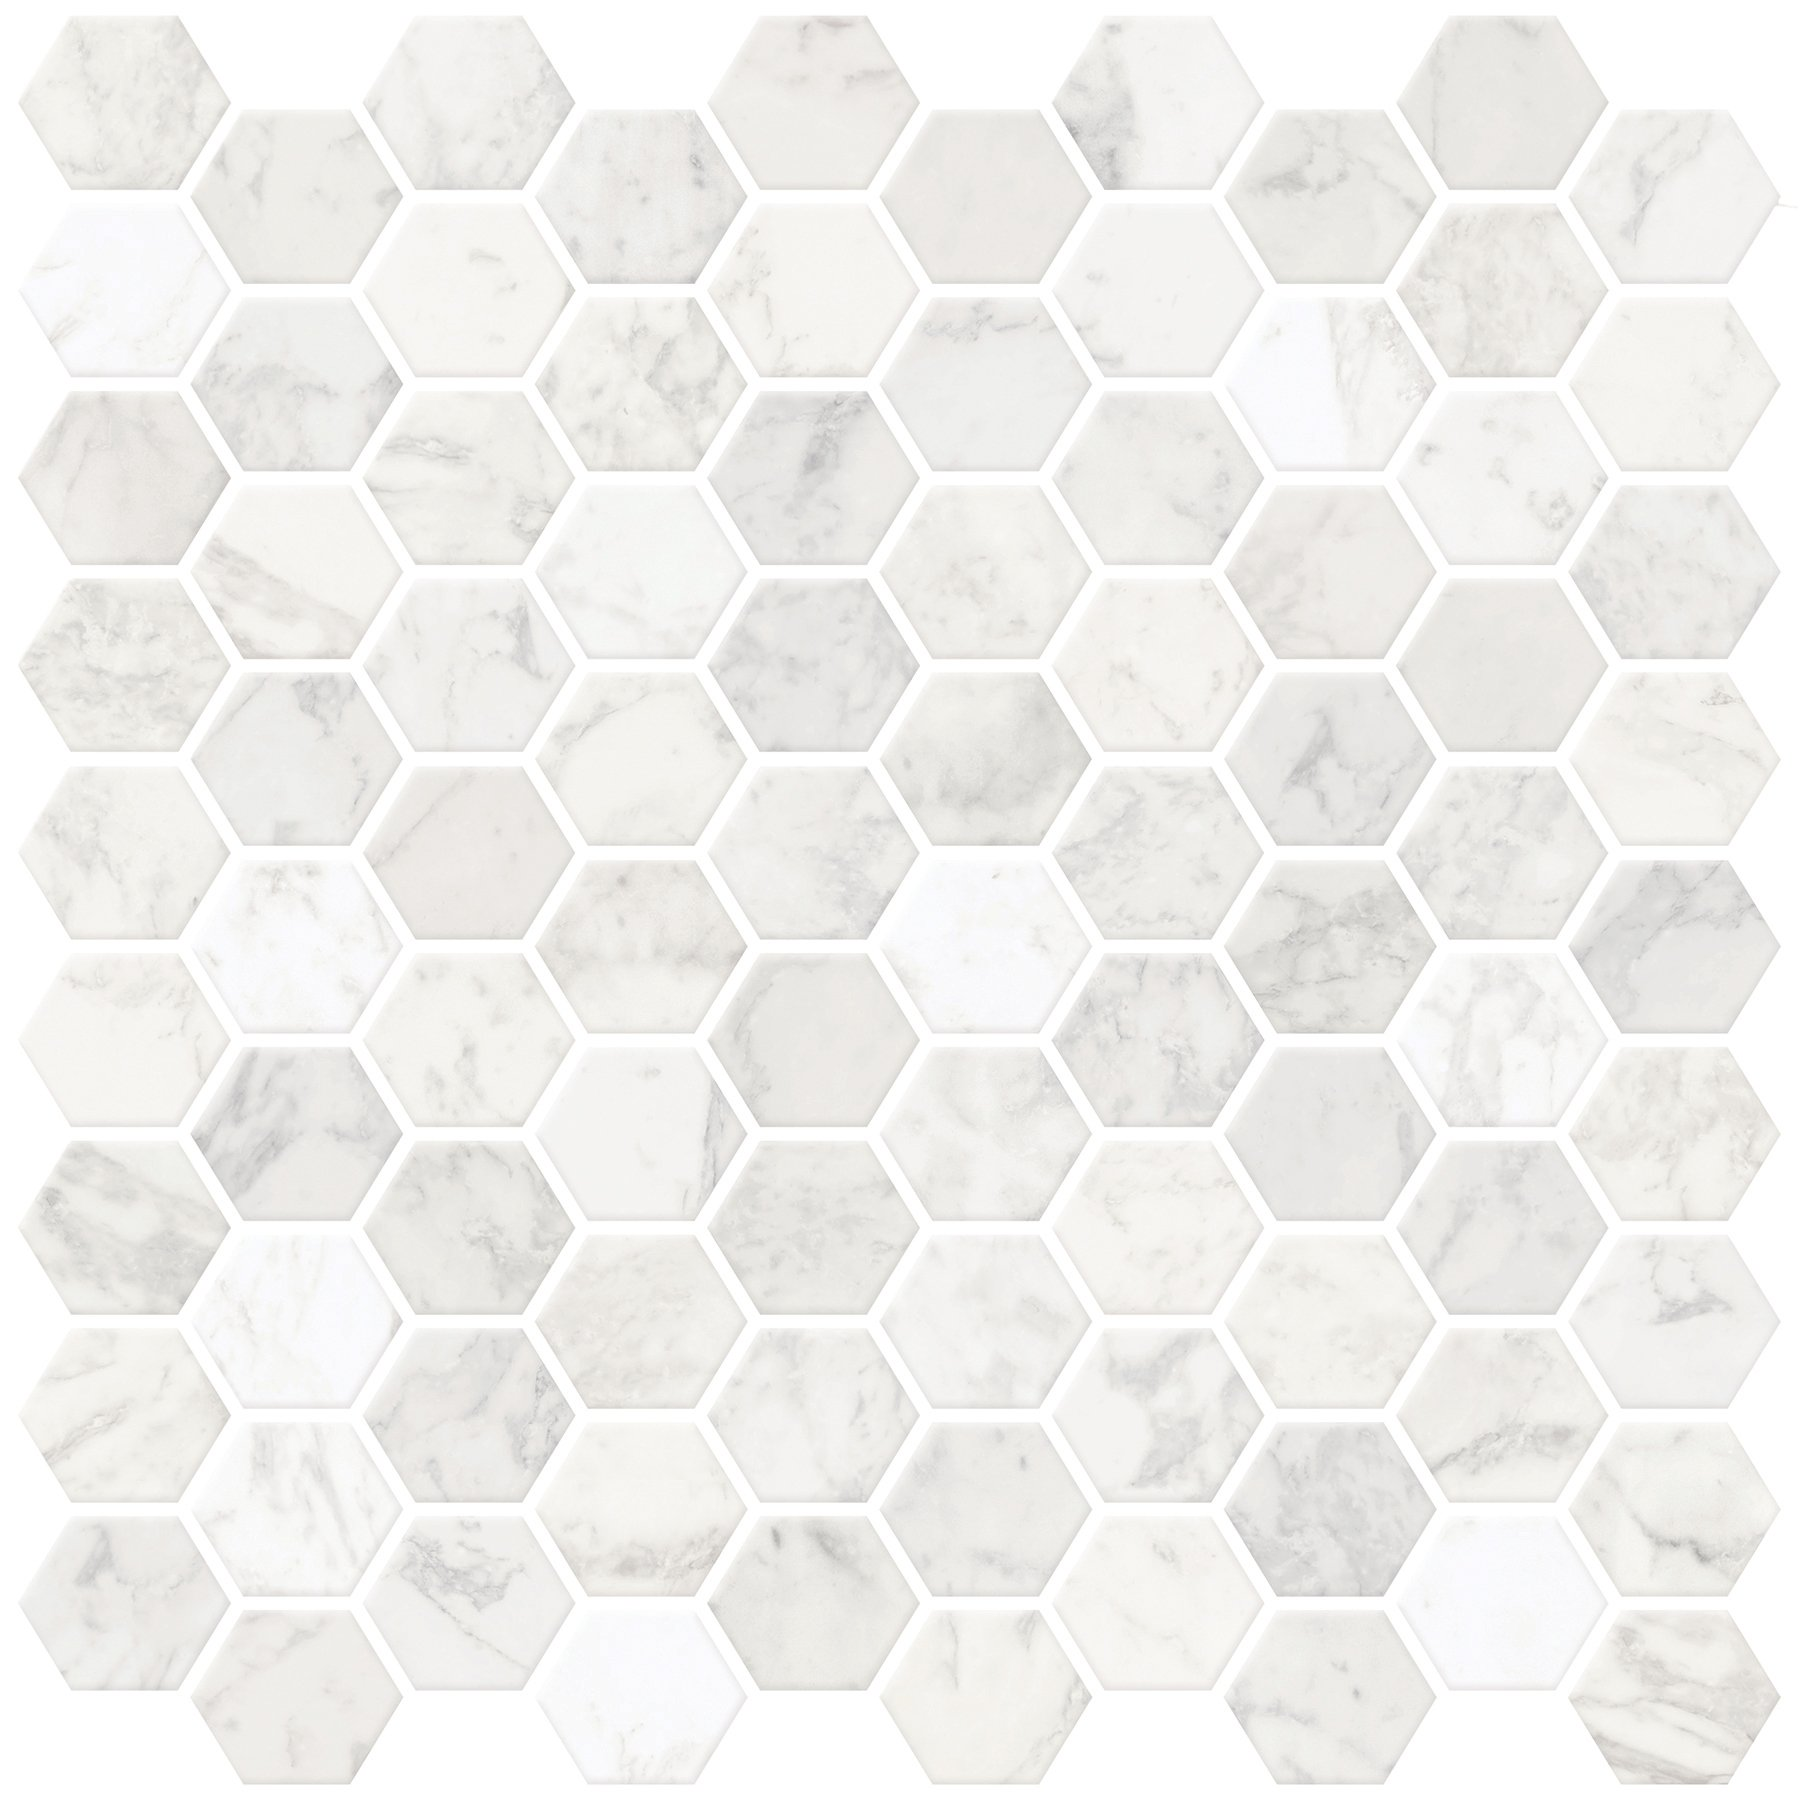 In Home NH2359 Hexagon Faux Marble Peel & Stick Backsplash Tiles, White & Off-White by In Home